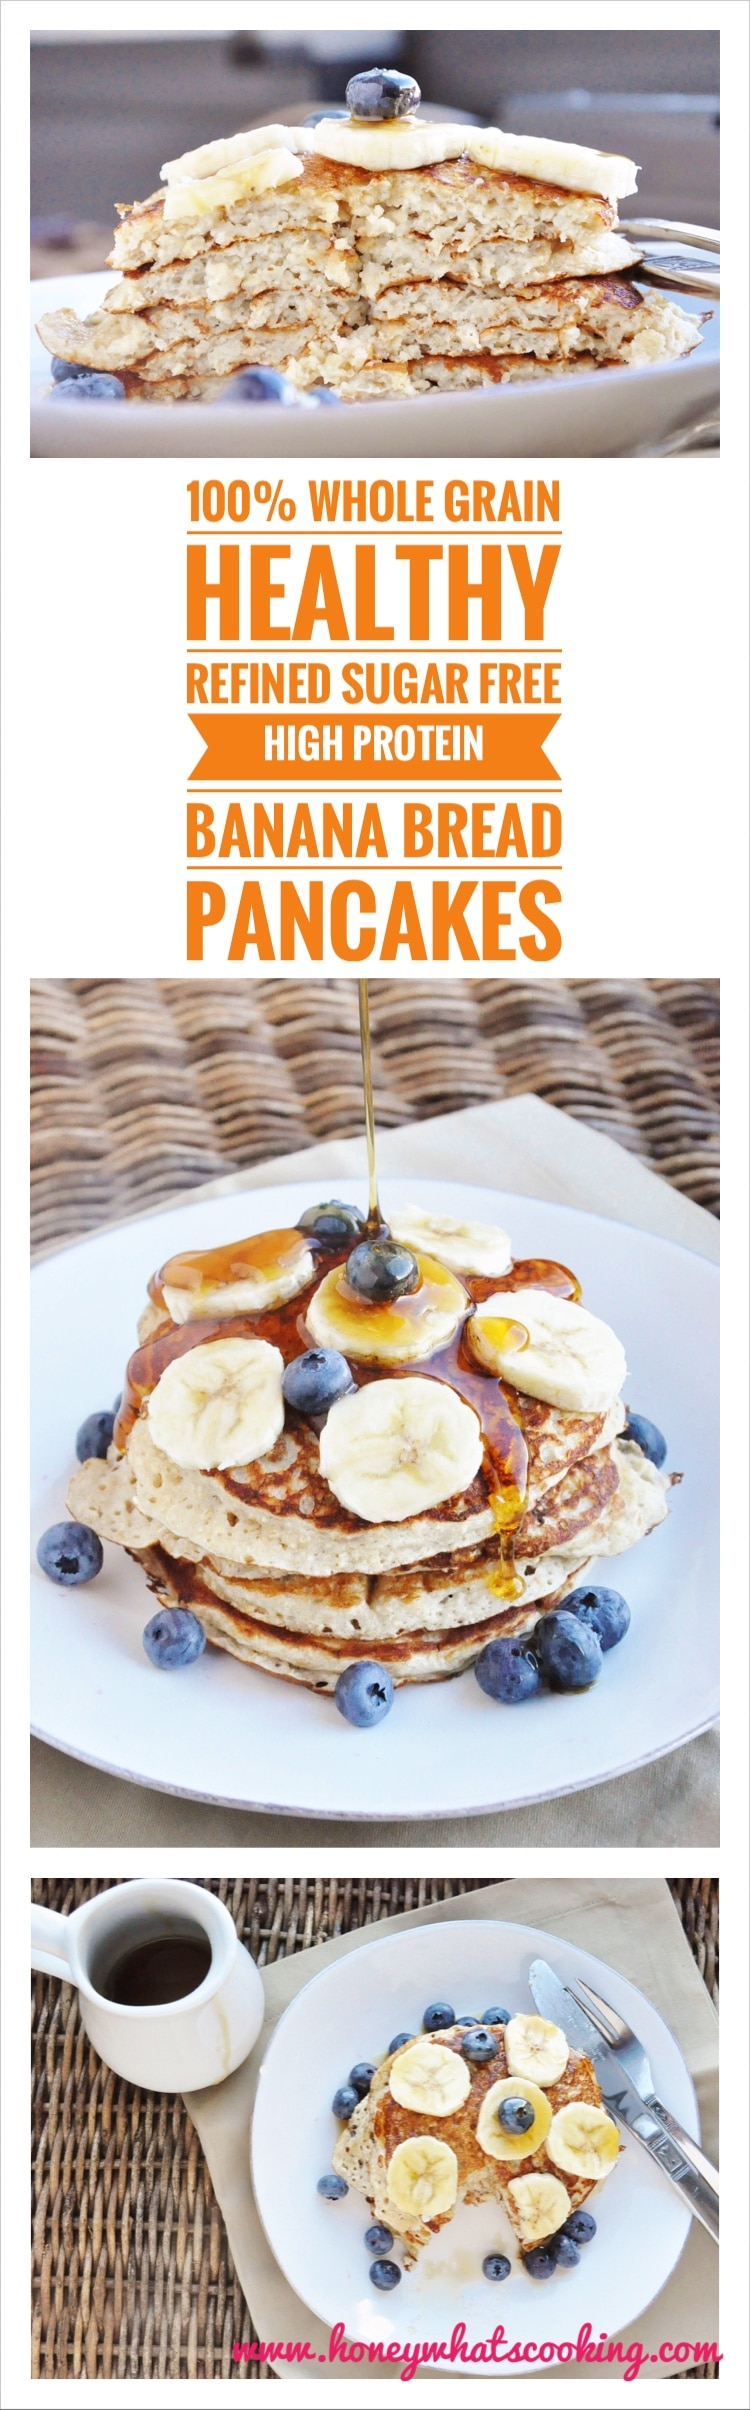 High Protein Banana Bread Pancakes pin